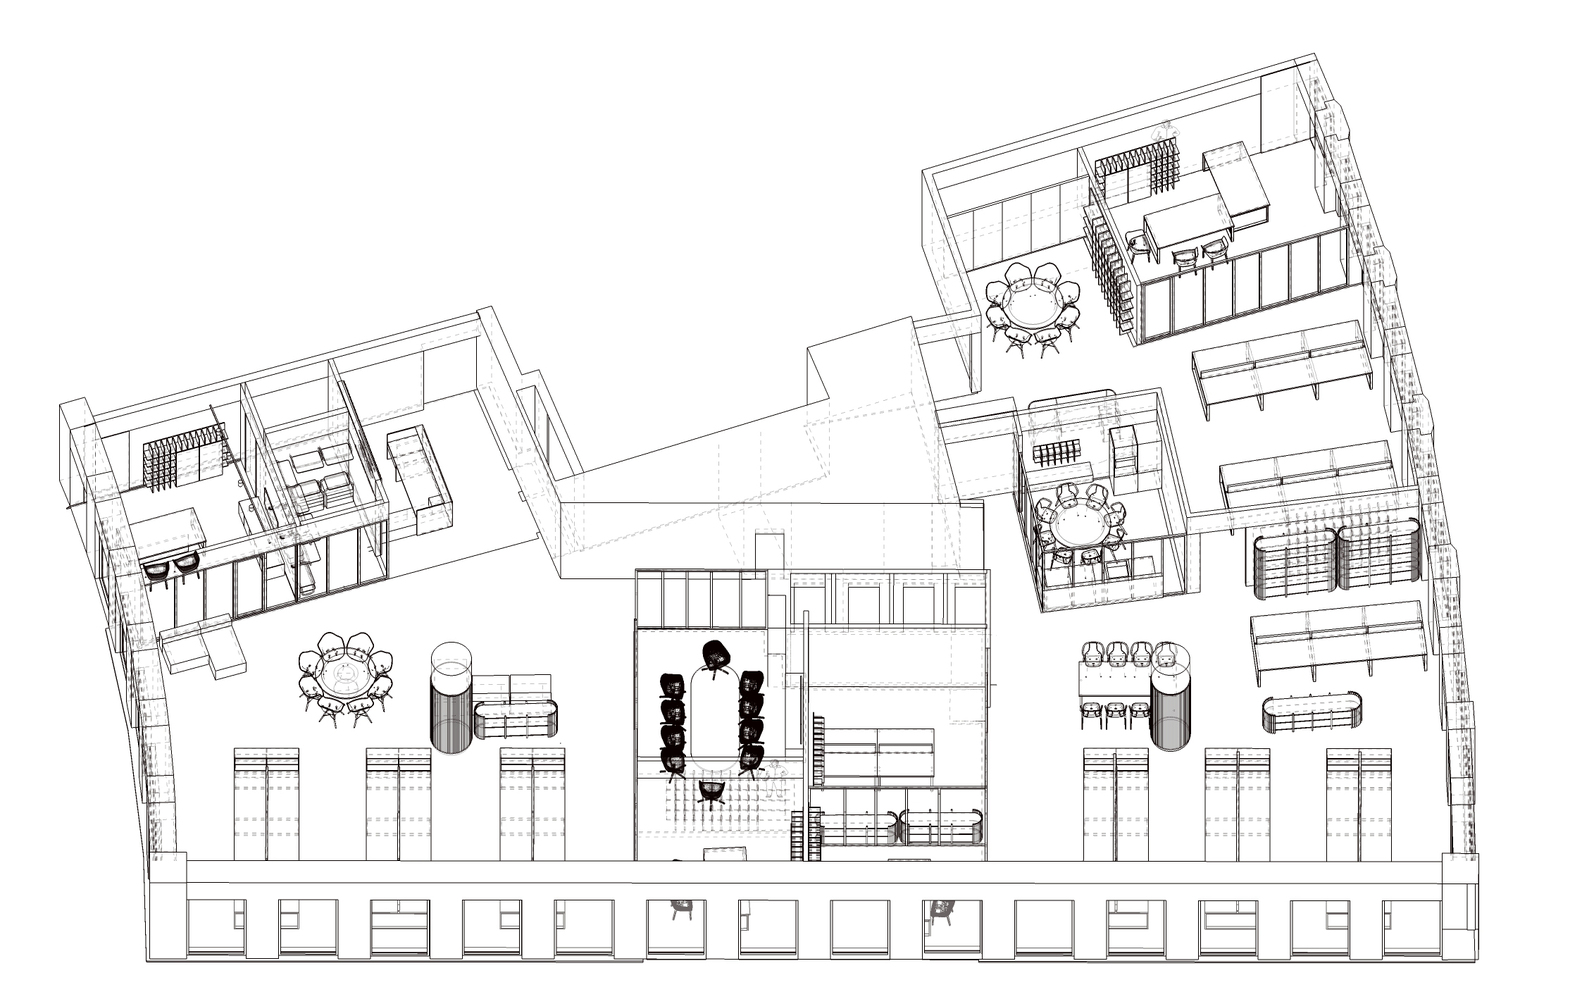 electrical house plan layout gallery of expert electric company offices leatelier business 20  gallery of expert electric company